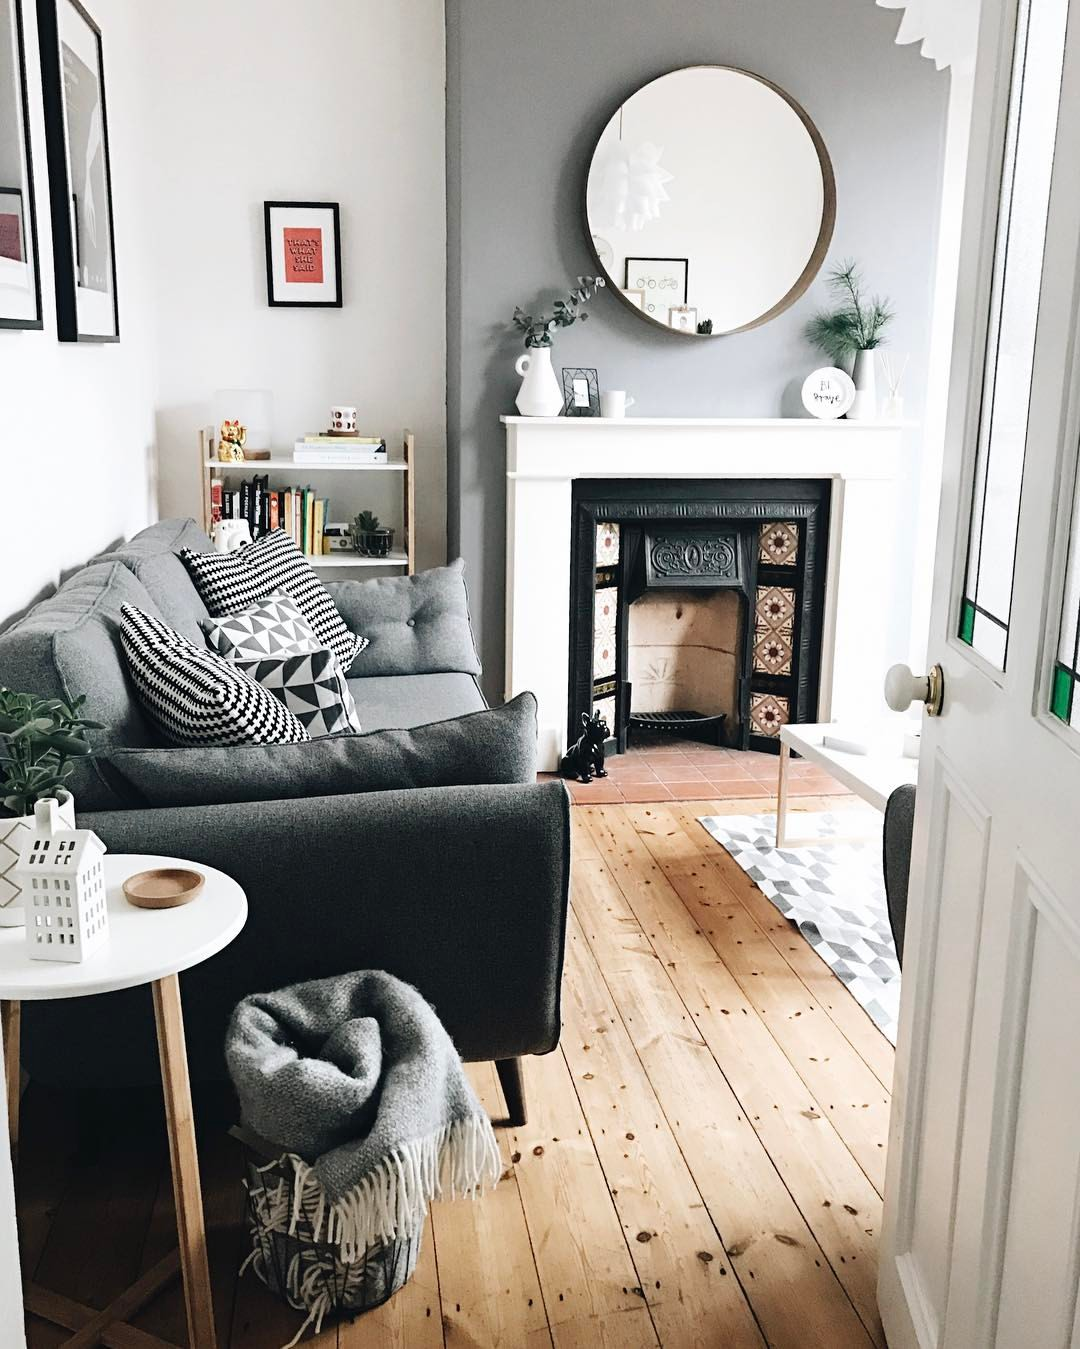 Slate Grey Wall By Dulux. Mirror From Ikea. Sofa From DFS